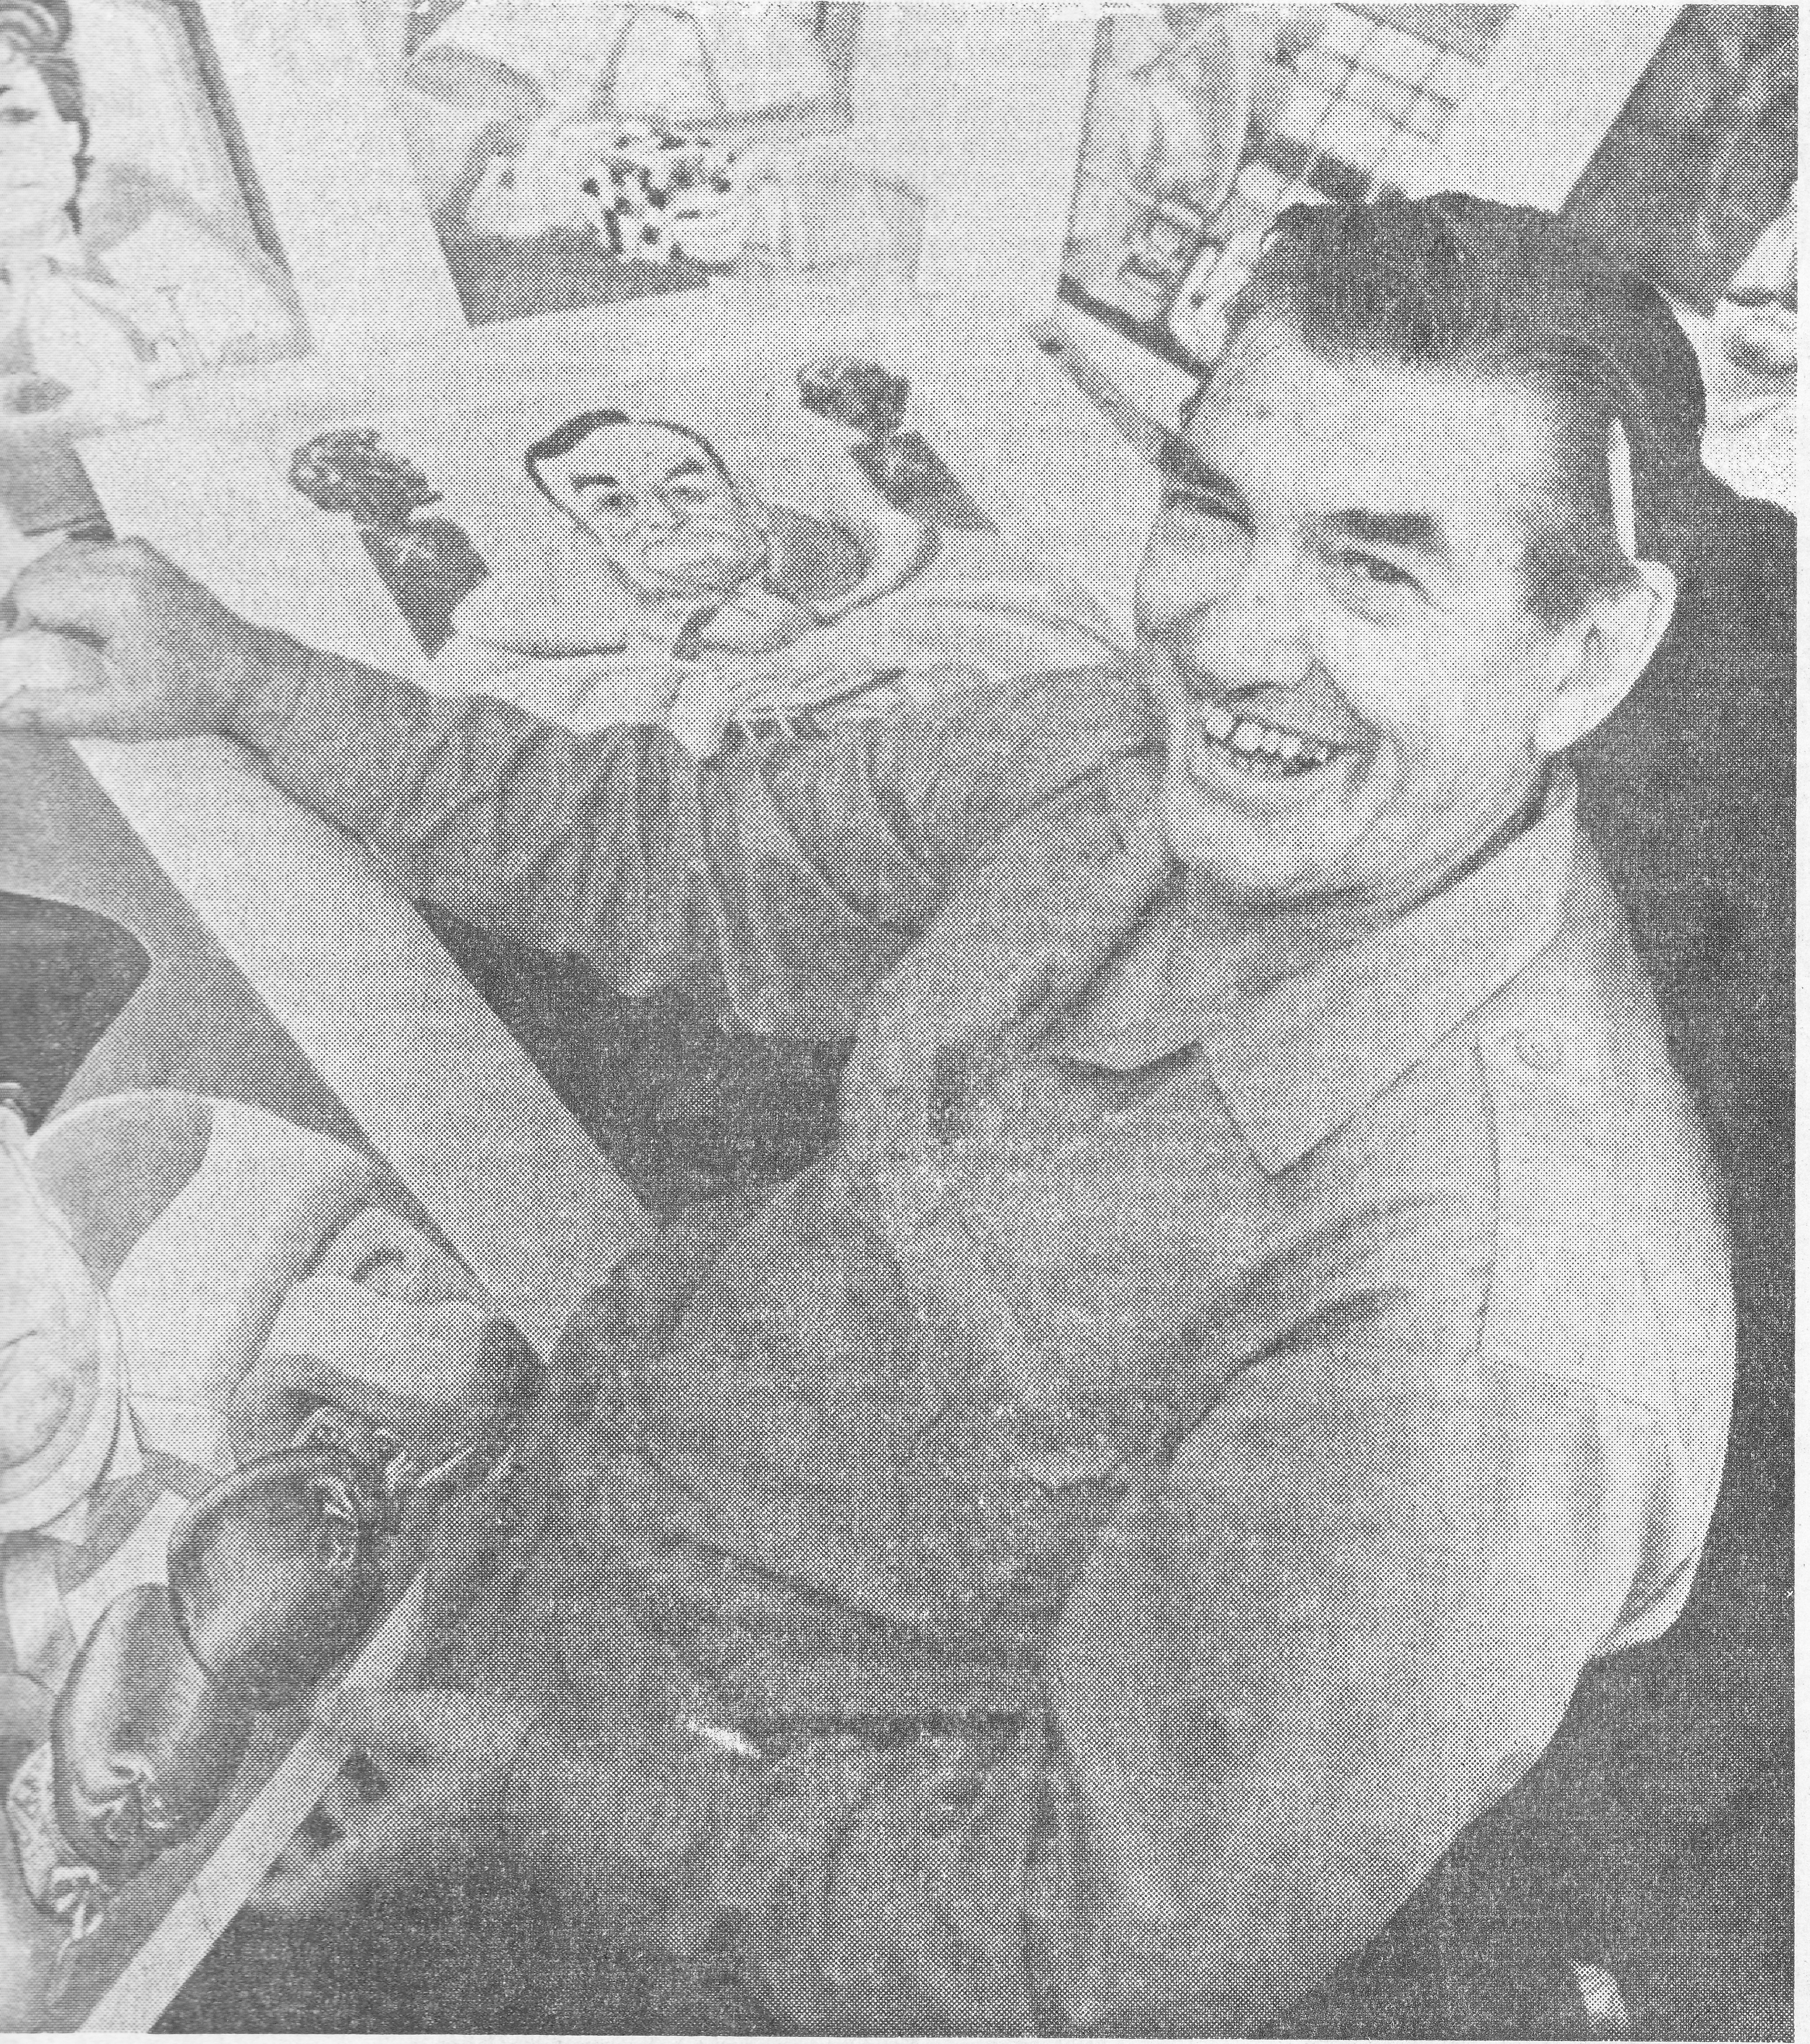 C:\Users\Robert\Documents\CANADIAN CARTOONING ILLUSTRATION and ANIMATION\IMAGE OF CARTOONIST OR ILLUSTRATOR\CARTOONIST &, or ILLUSTRATOR M\MACPHERSON DUNCAN, Sunday Star, 25 Apr. 1993, H1.jpg